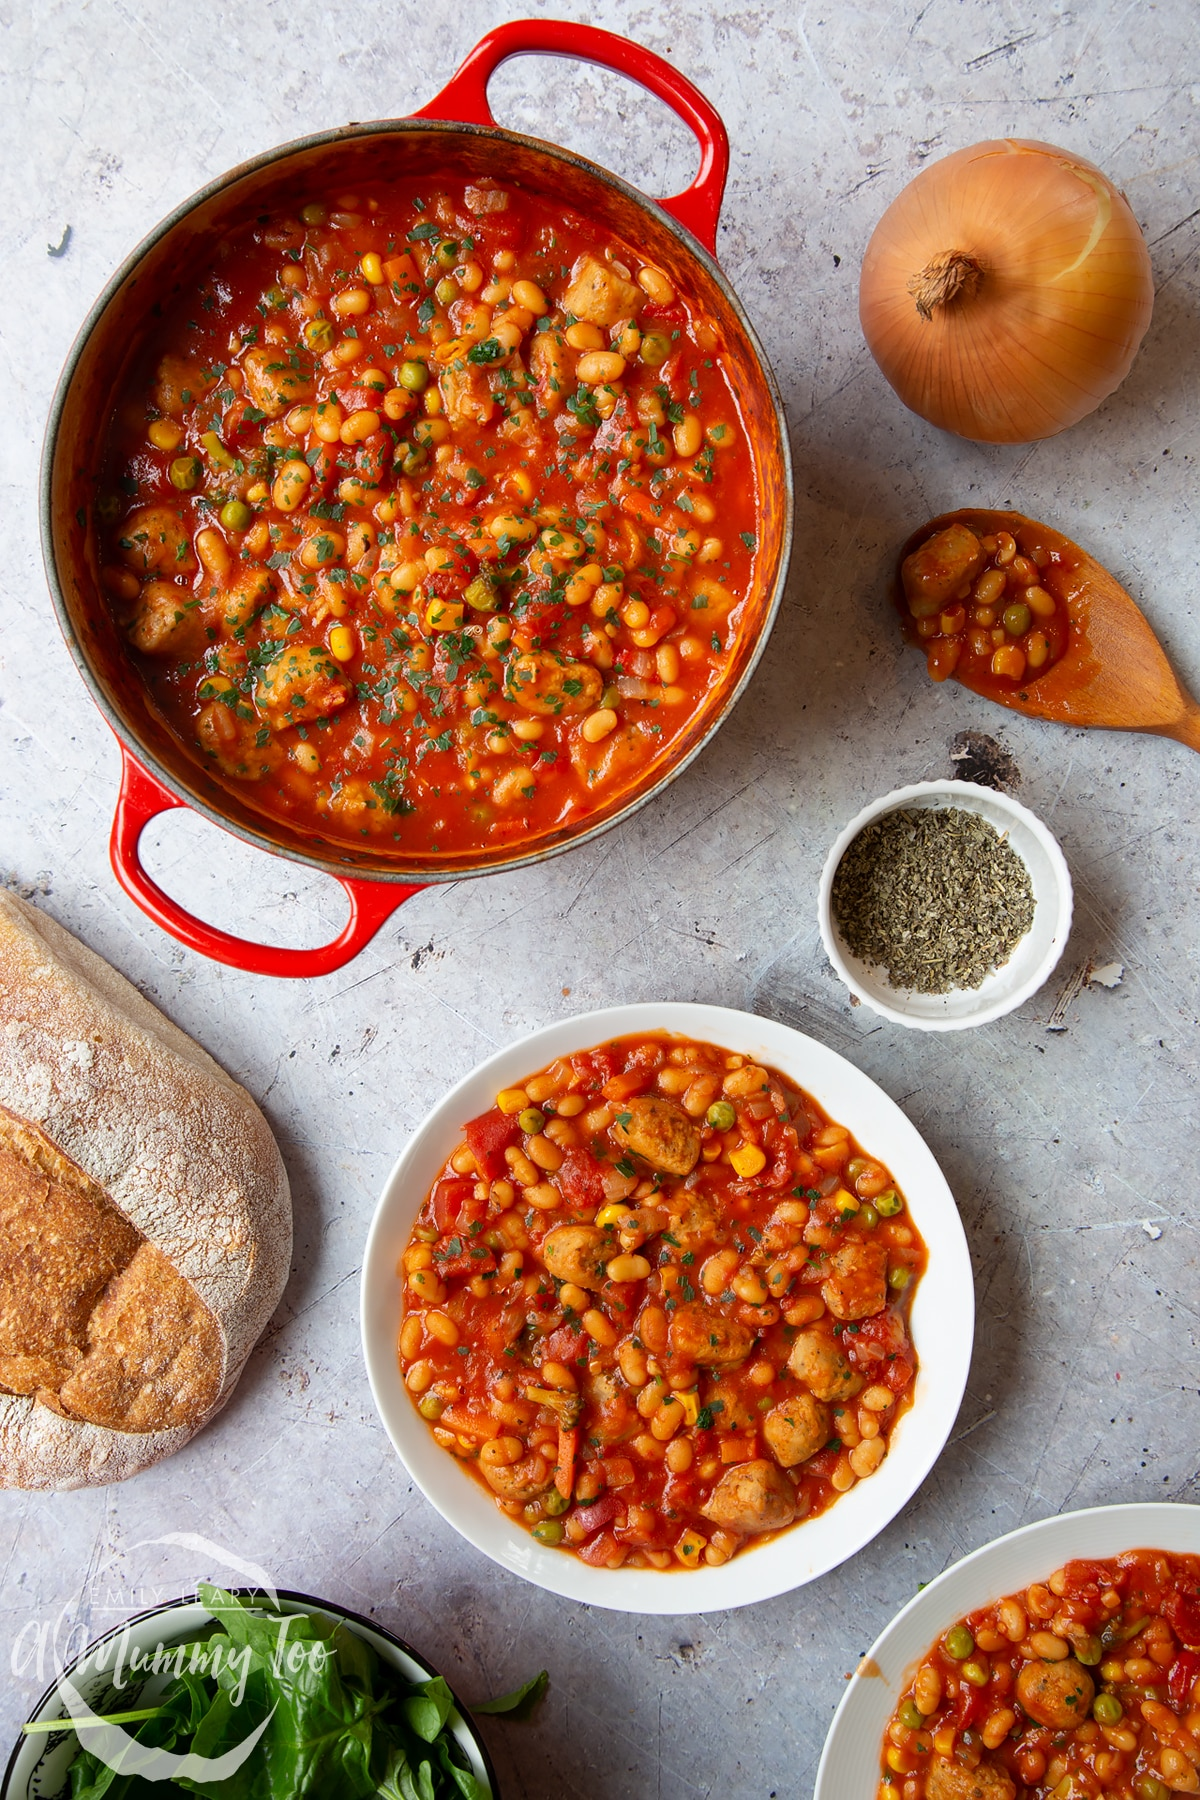 Veggie sausage and bean casserole served into a shallow white bowl. A large pot of casserole is also shown alongside a large loaf of crusty bread.